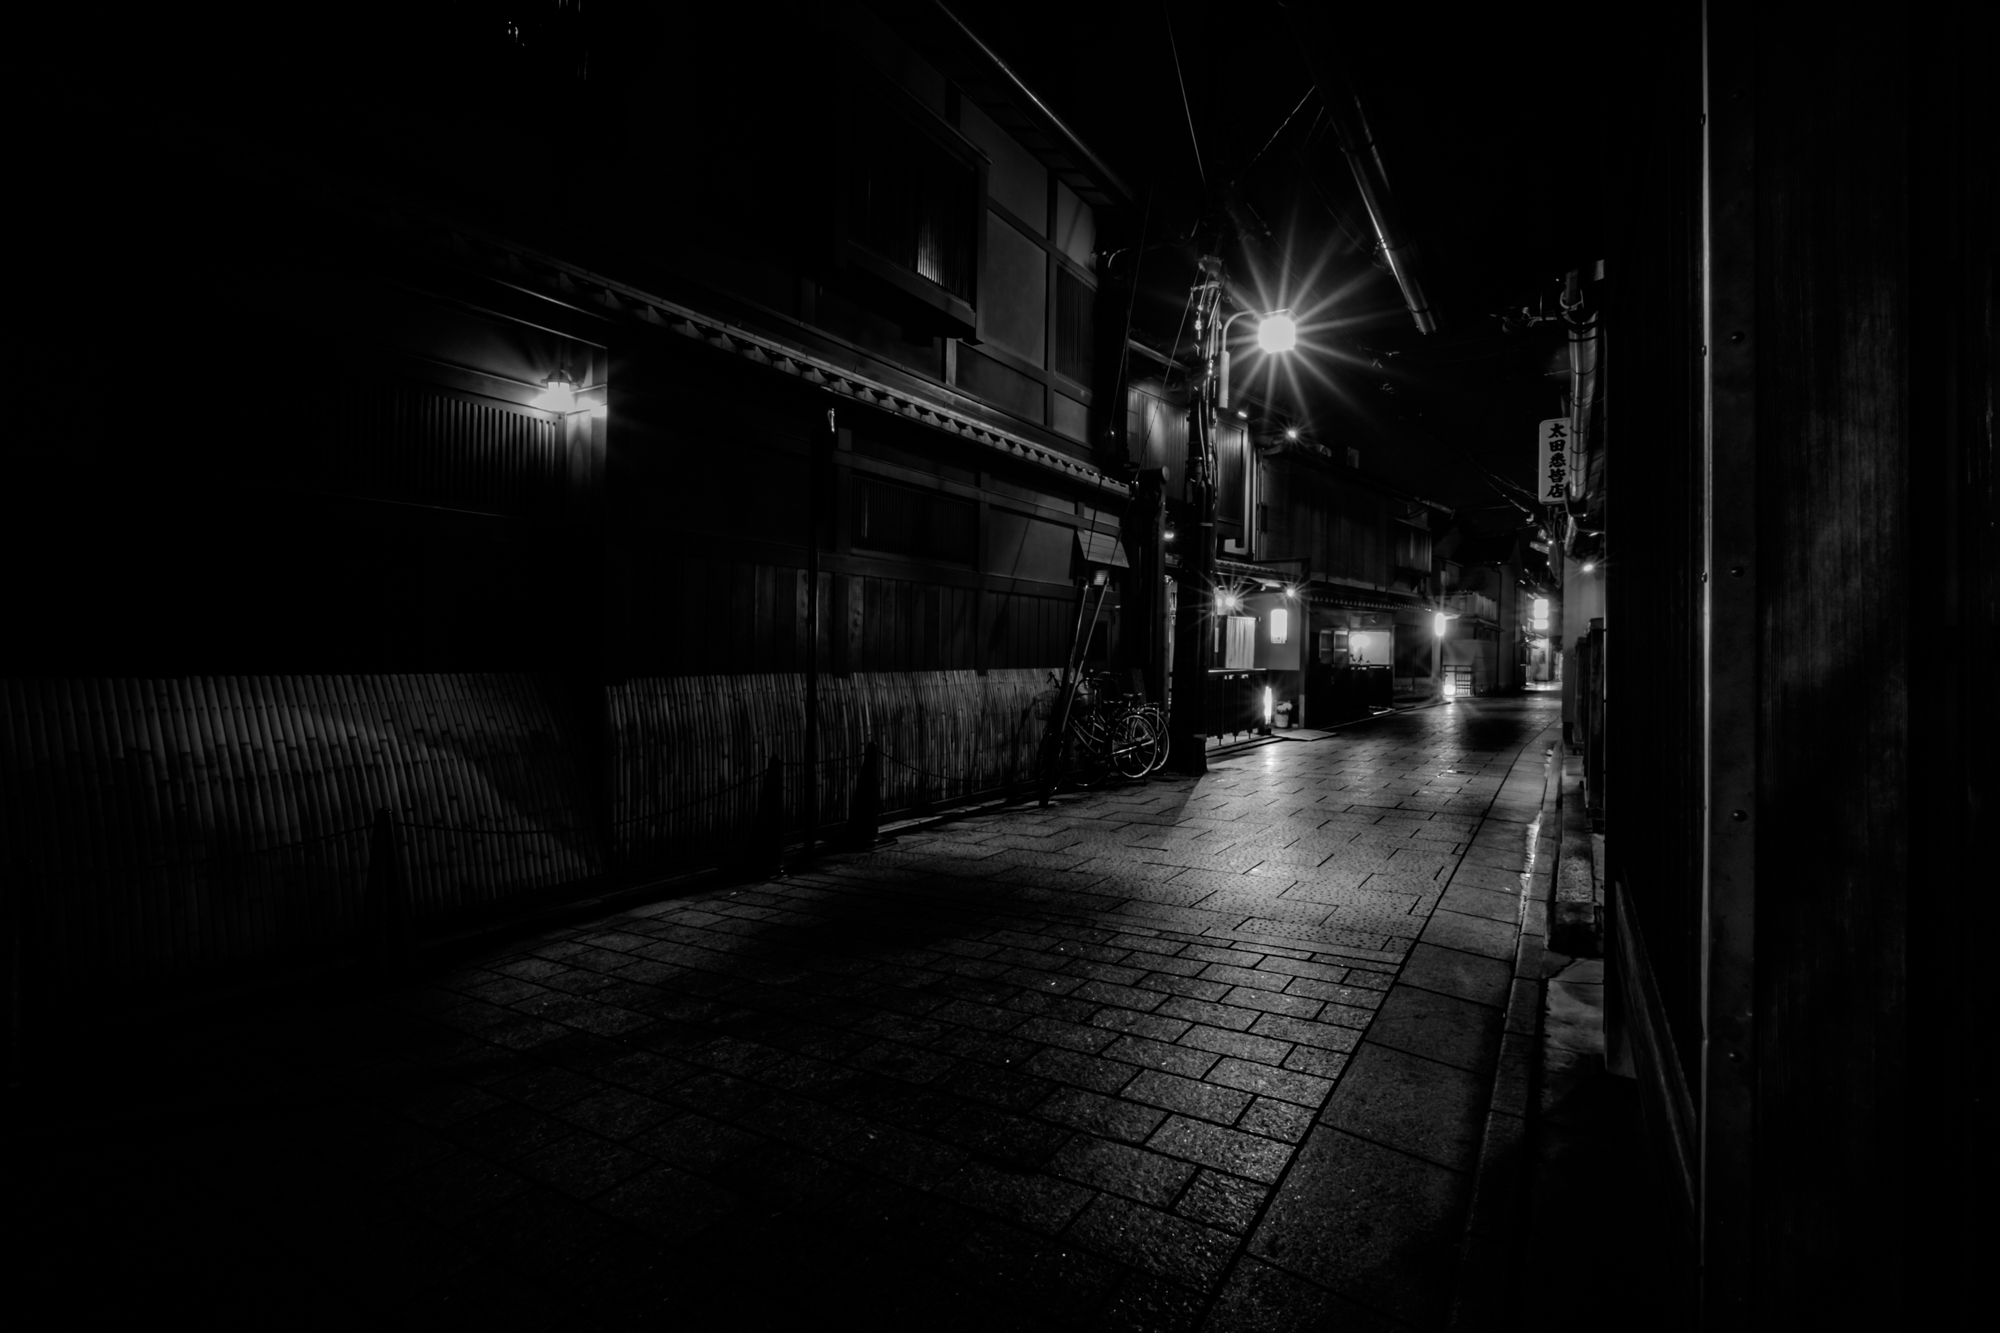 Kyoto Gion District – Fujifilm X-T10 with XF10-24mmF4 – 10mm – F22 – 45sec – ISO200